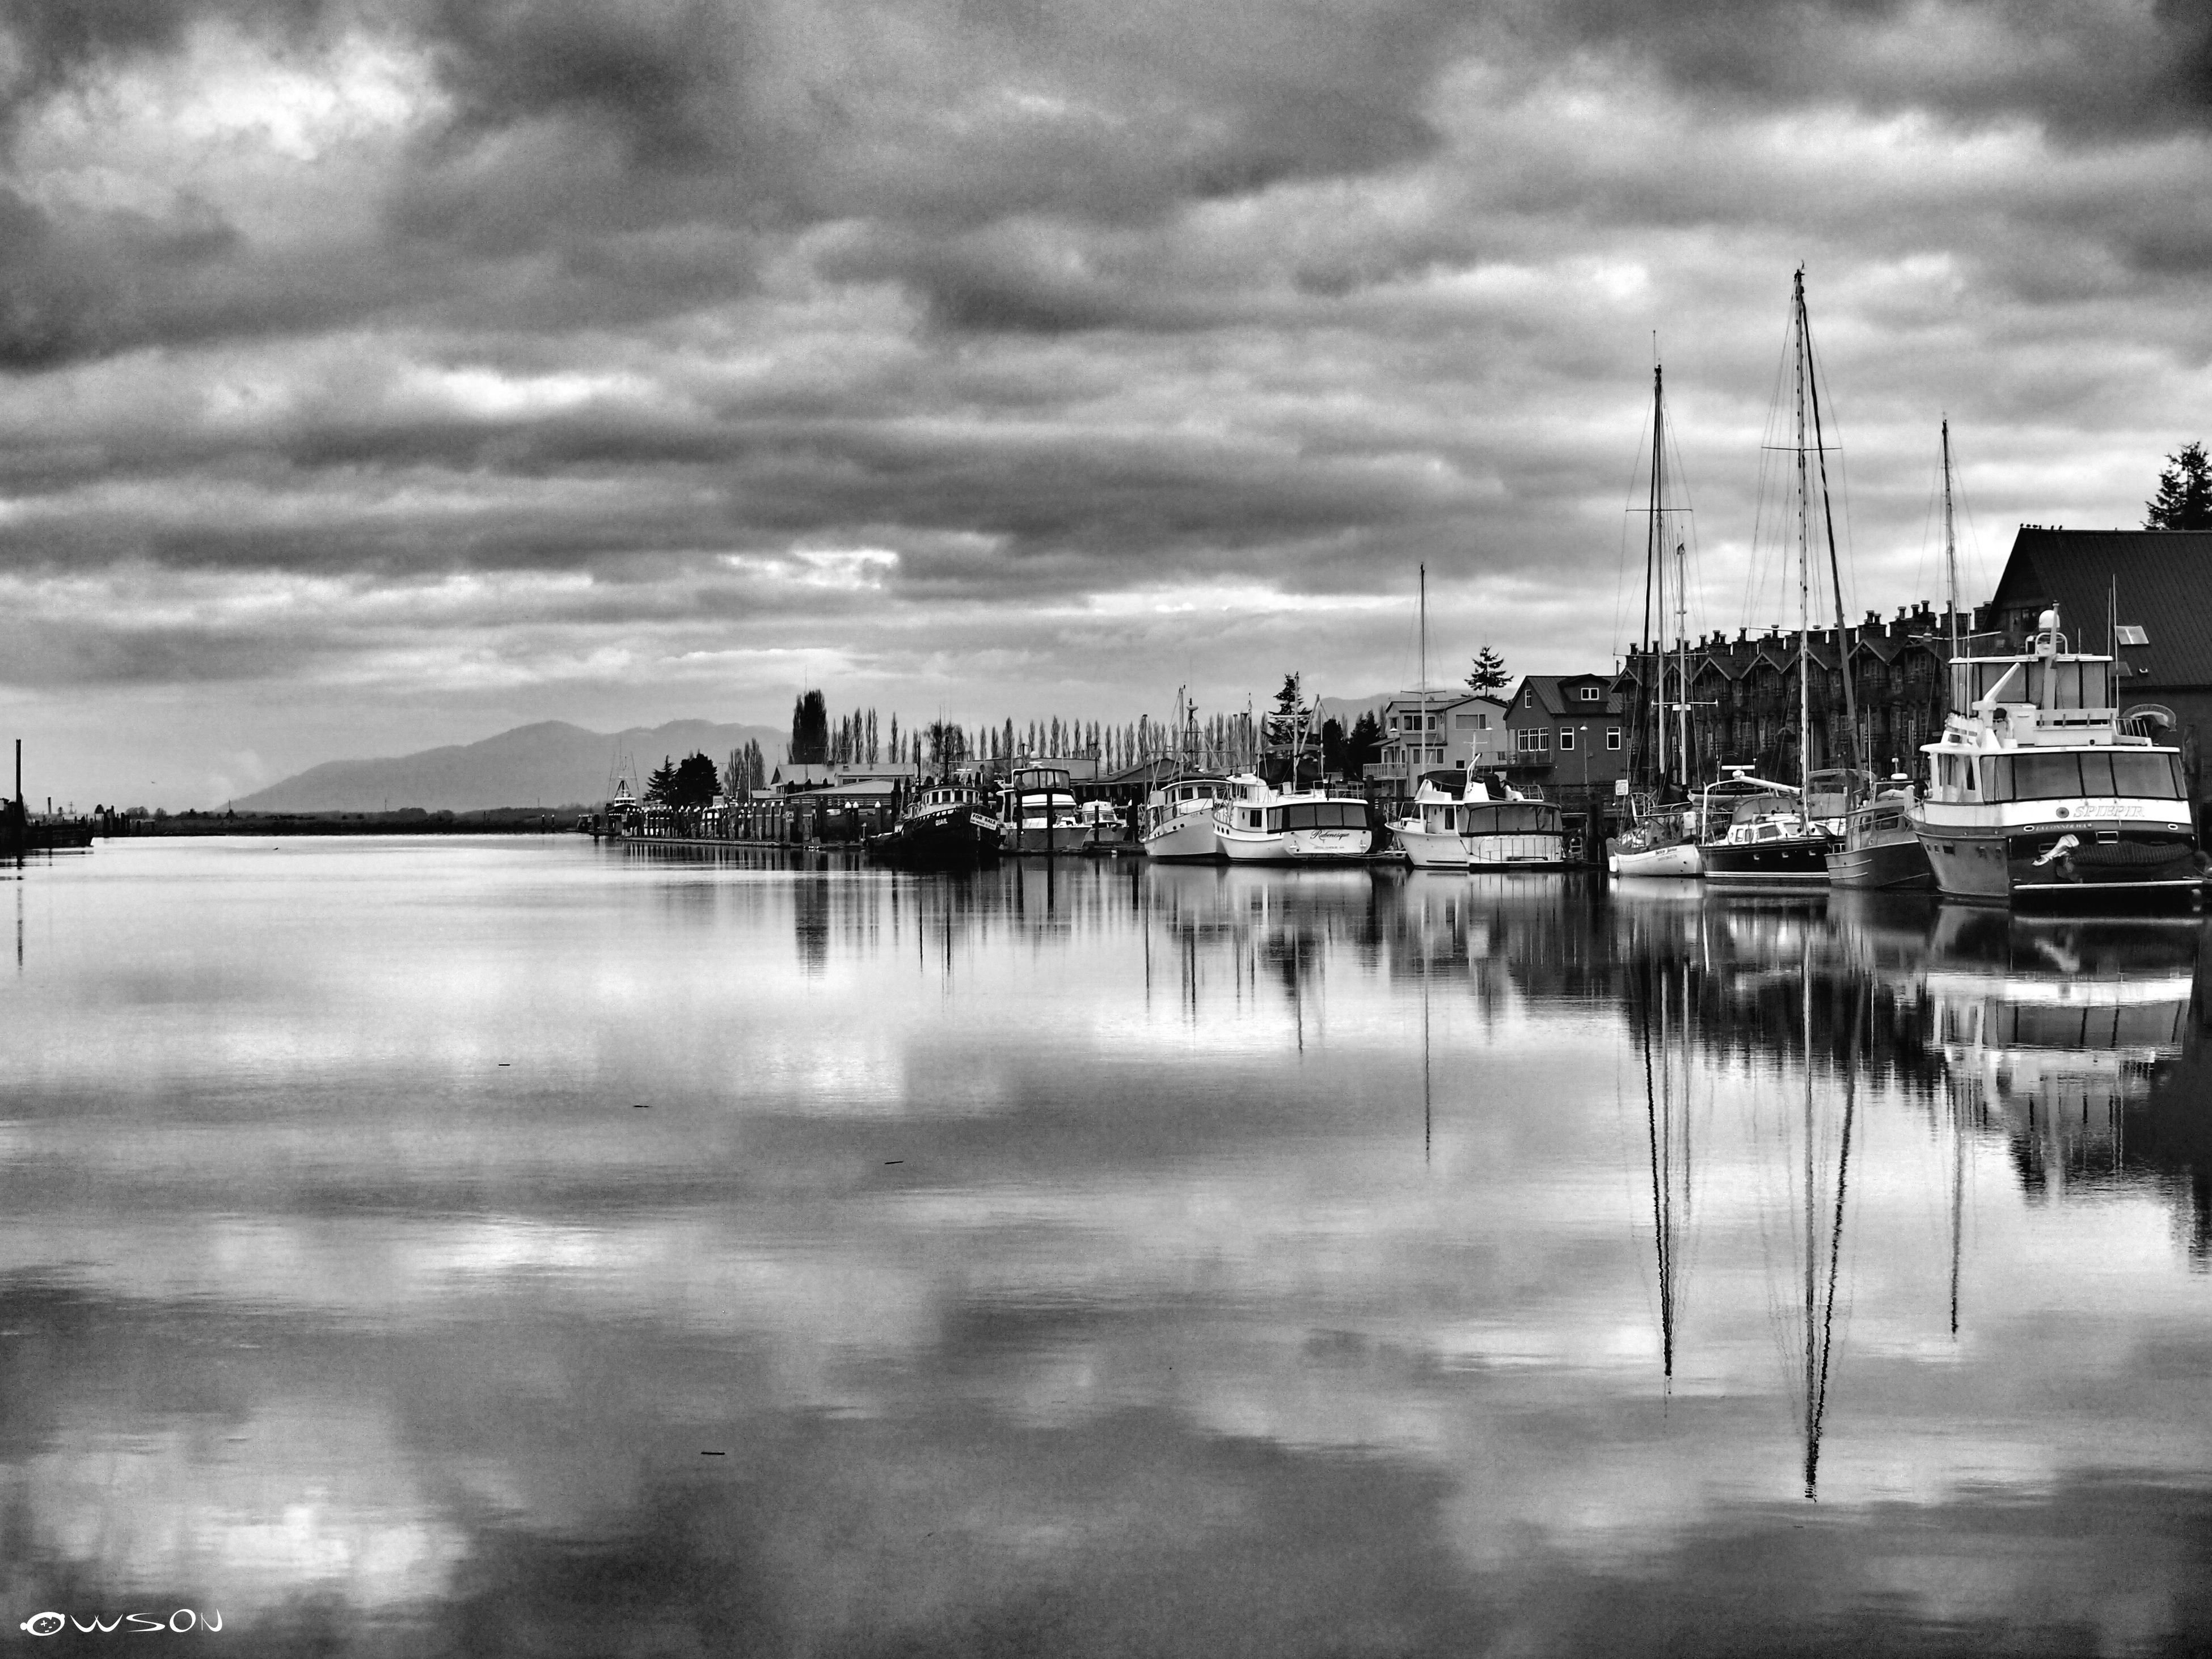 water, reflection, sky, waterfront, cloud - sky, building exterior, moored, nautical vessel, transportation, architecture, built structure, cloudy, harbor, lake, mode of transport, boat, cloud, river, city, weather